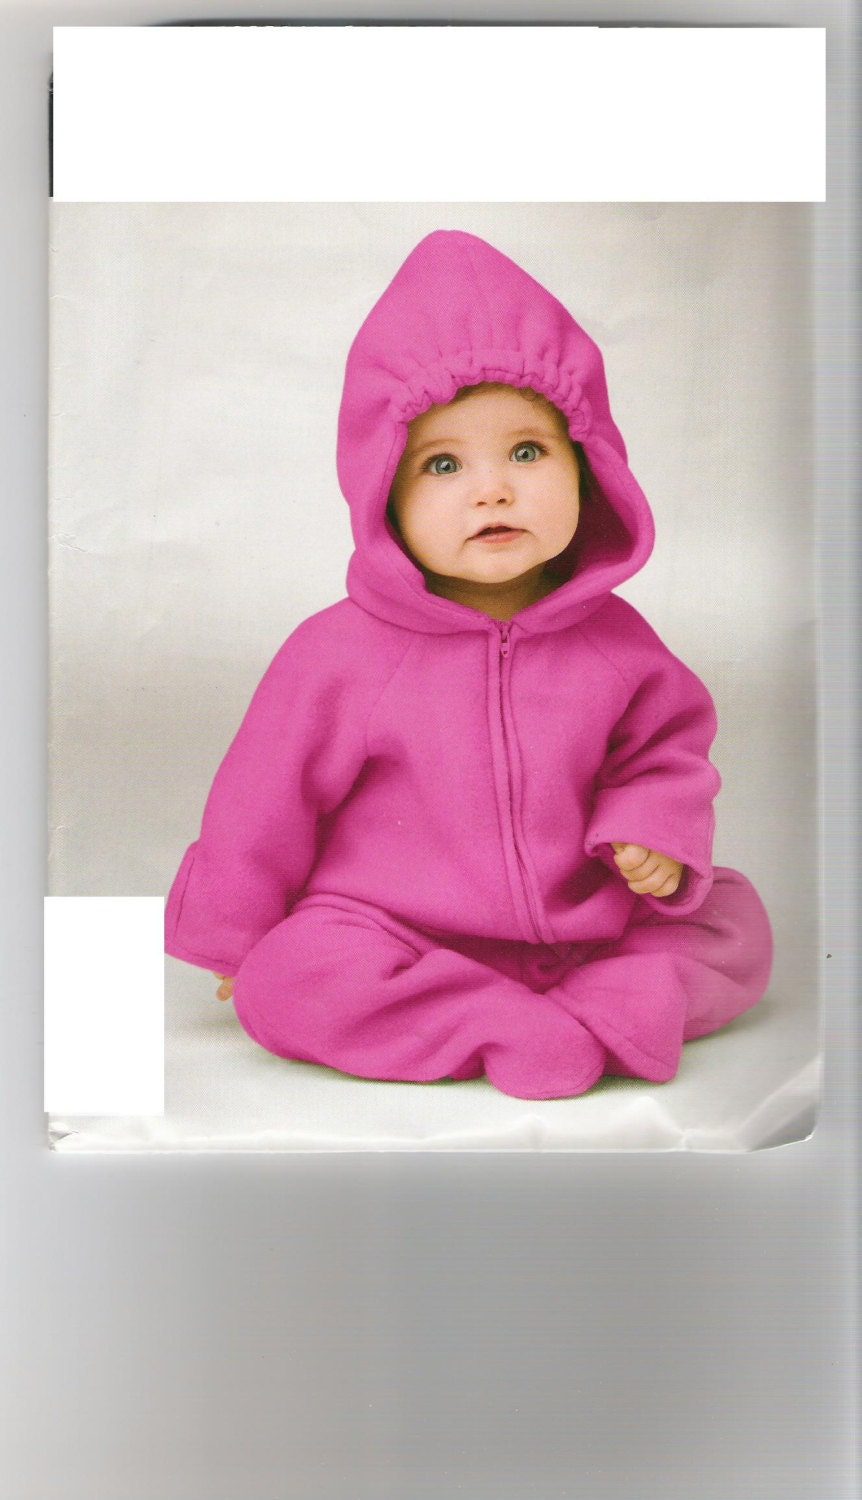 Fleece, soft and warm one piece suit for baby - SunshineBabyandQuilt